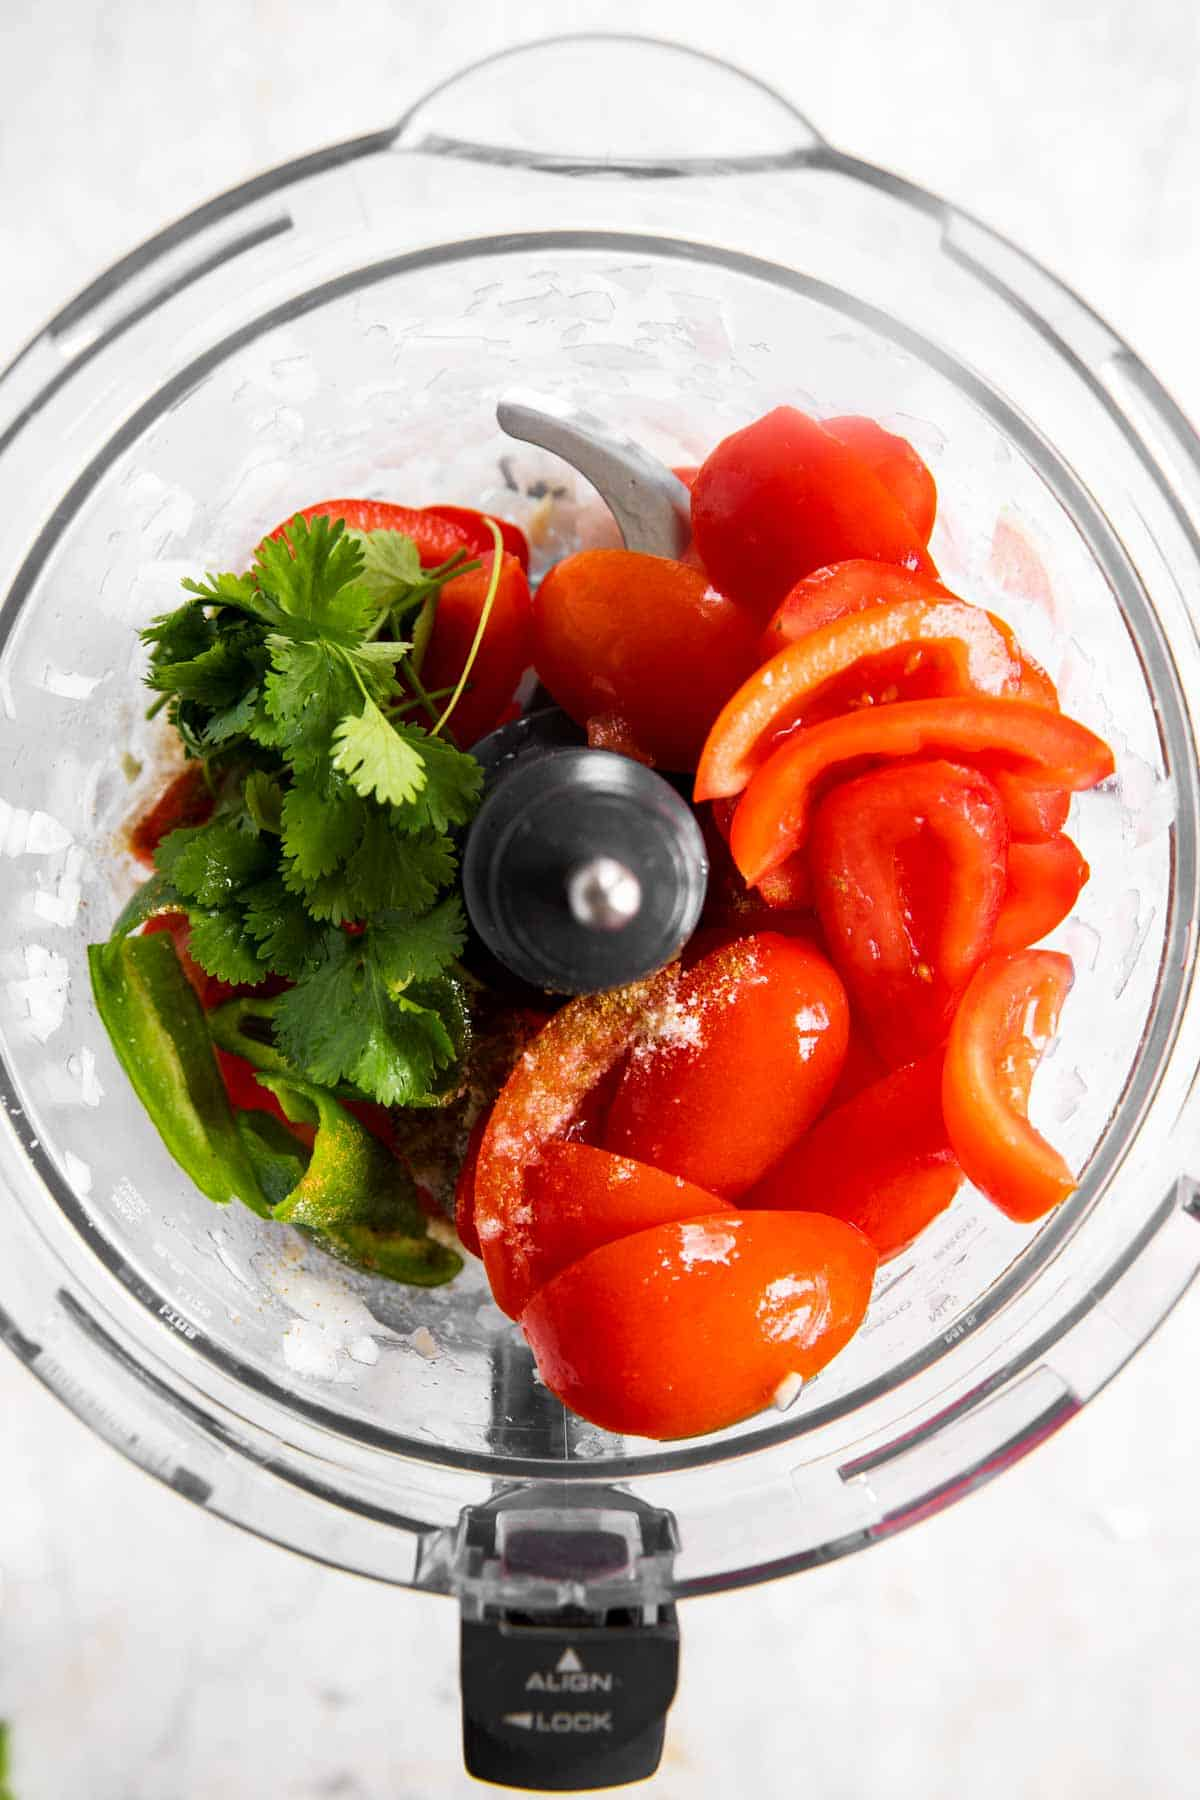 cilantro and tomatoes in food processor bowl